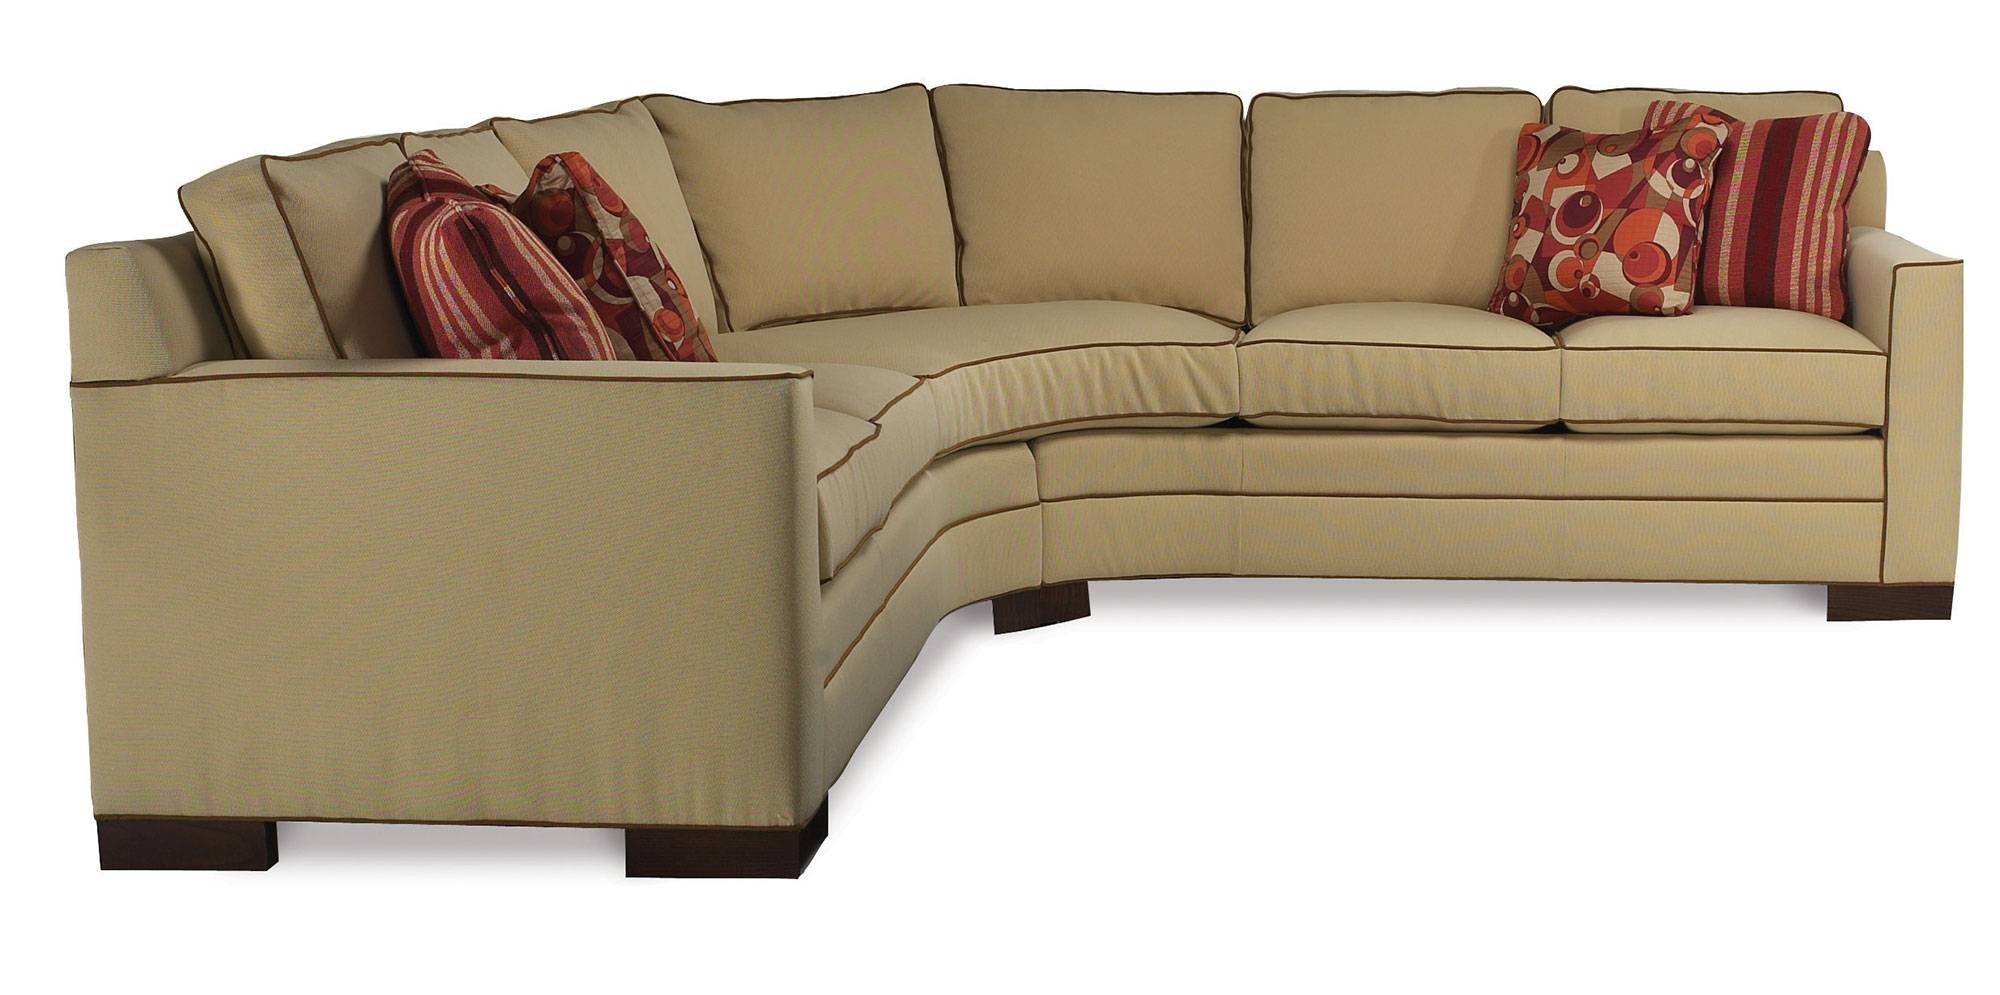 Sofas Center : Luxury High Quality Sectional Sofa With Additional with regard to Quality Sectional Sofa (Image 28 of 30)